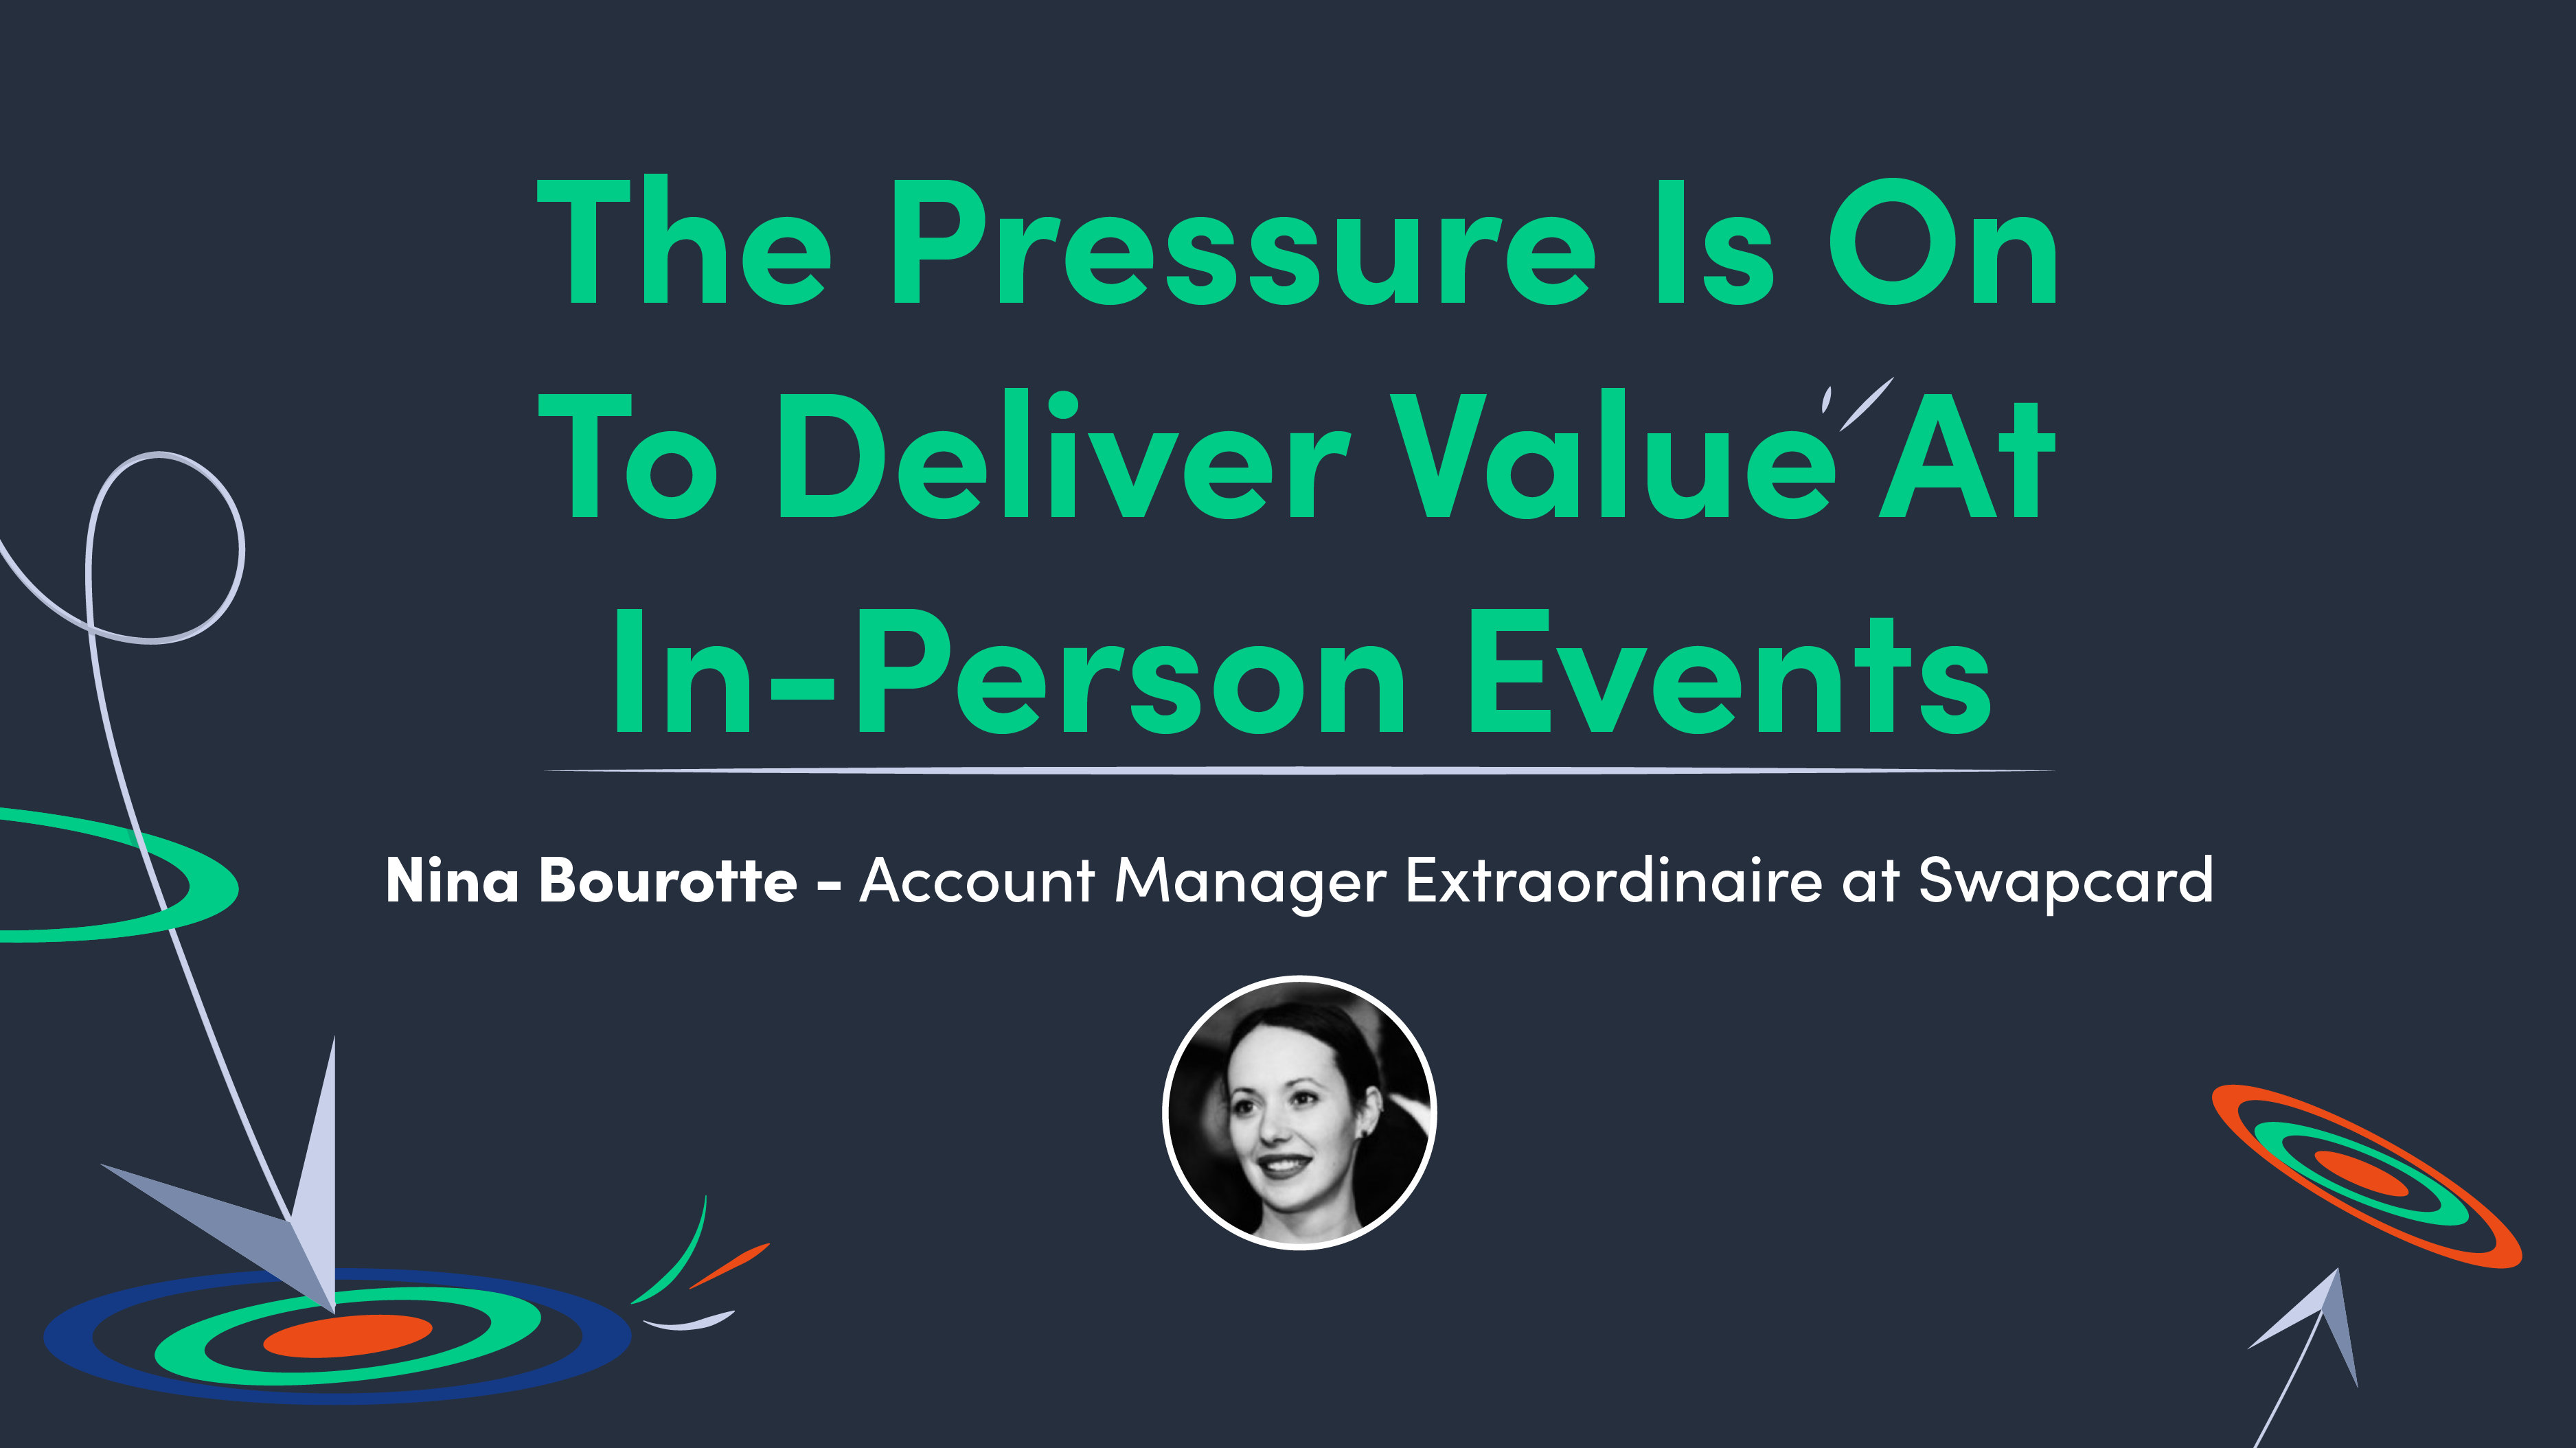 The Pressure Is On To Deliver Value At In-Person Events